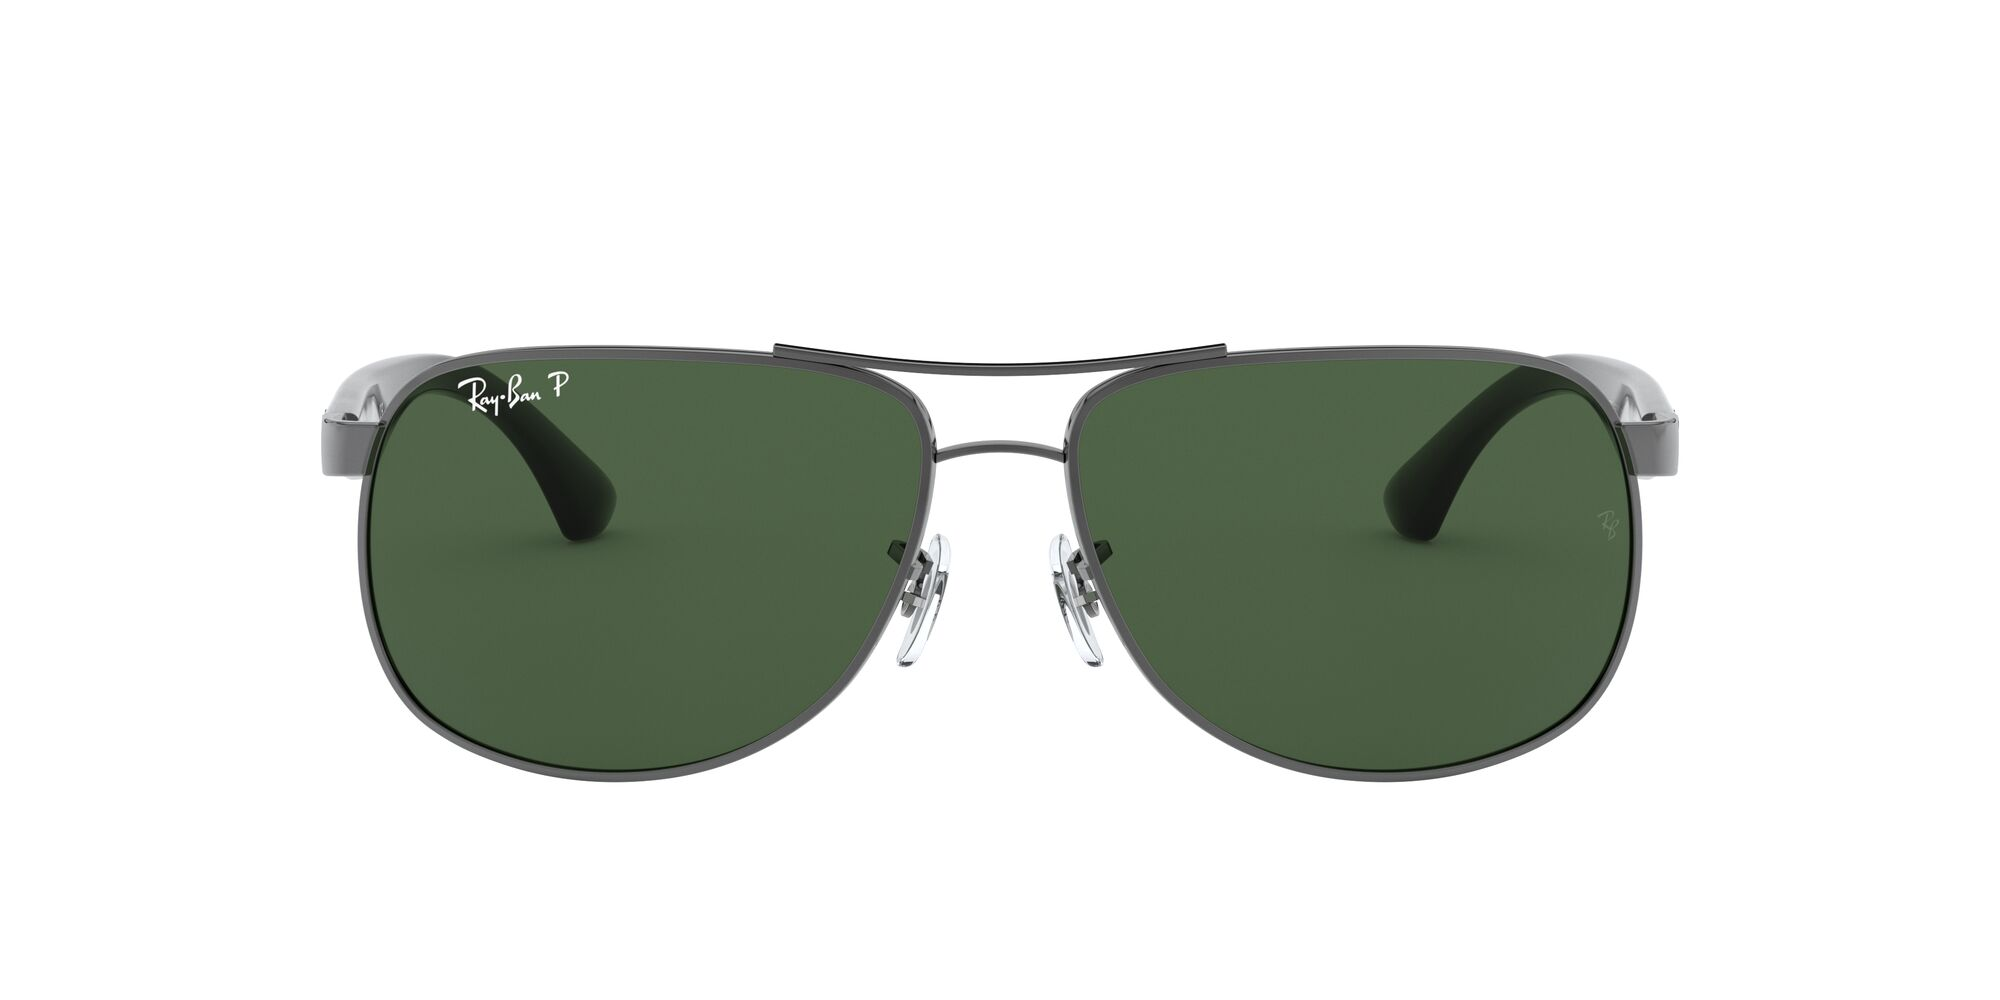 Front Ray-Ban Ray-Ban 3502 004/58 61/14 Zilver/Groen